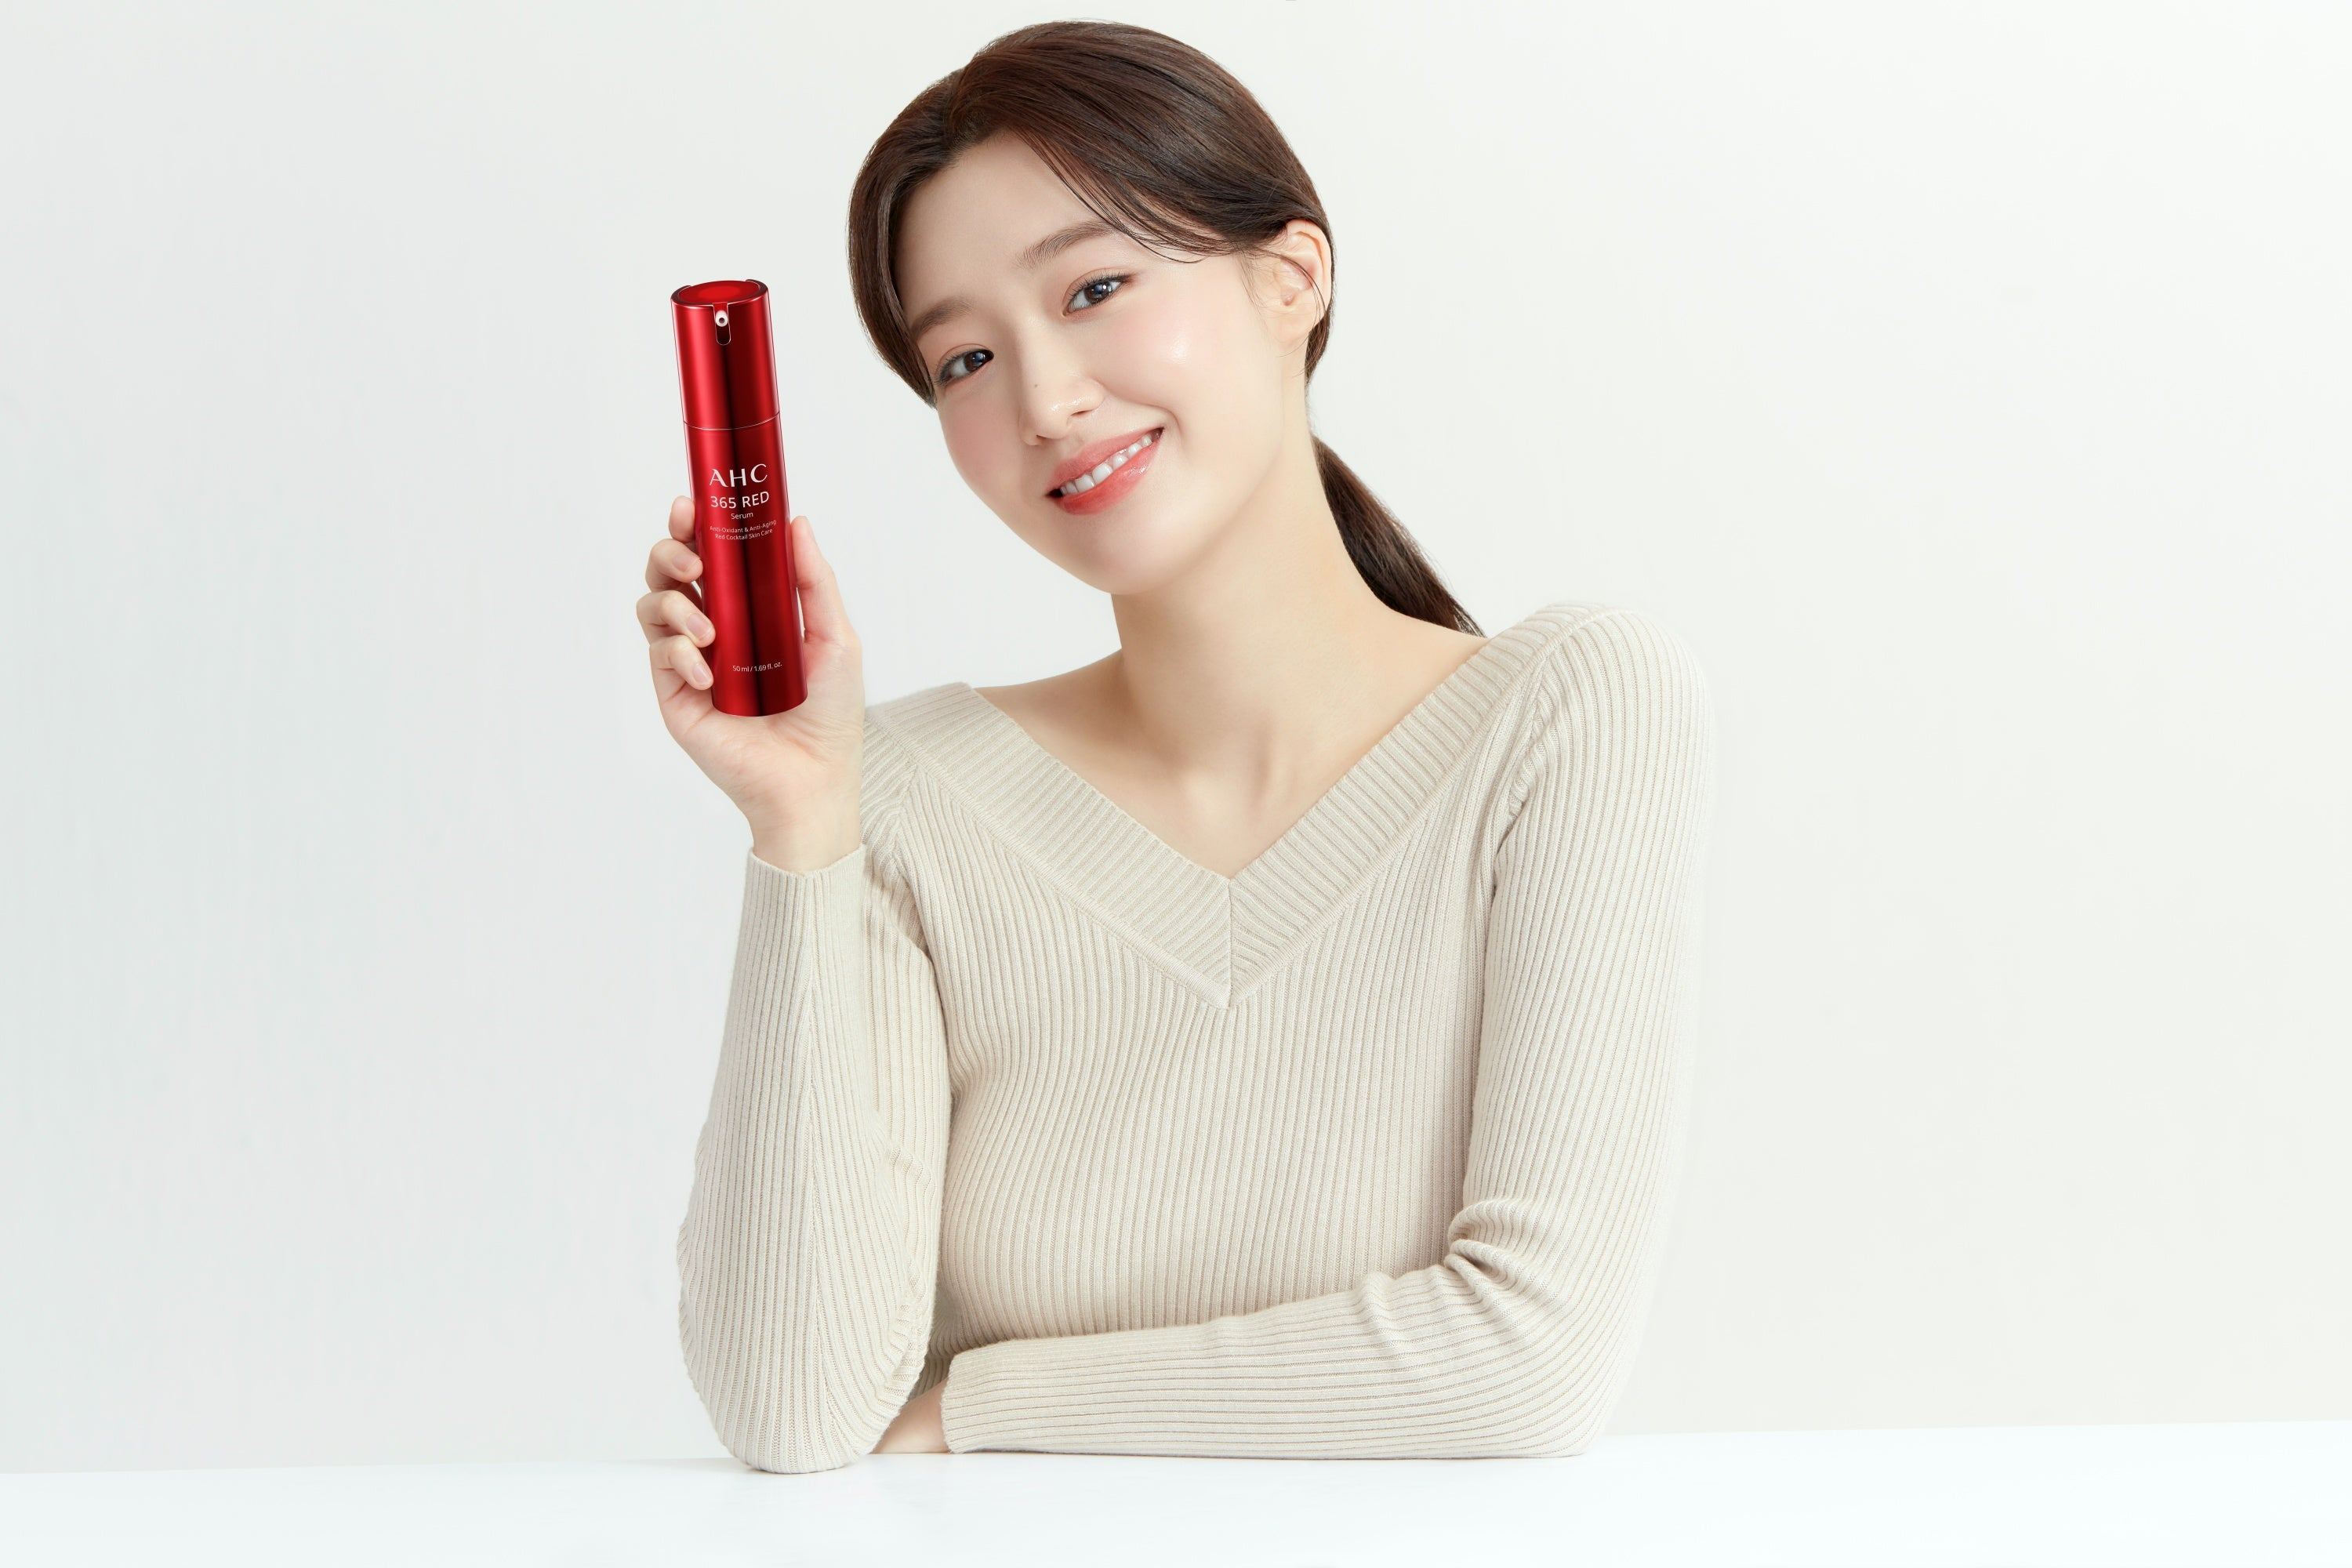 Cho Hye Joo holding a bottle of AHC red serum